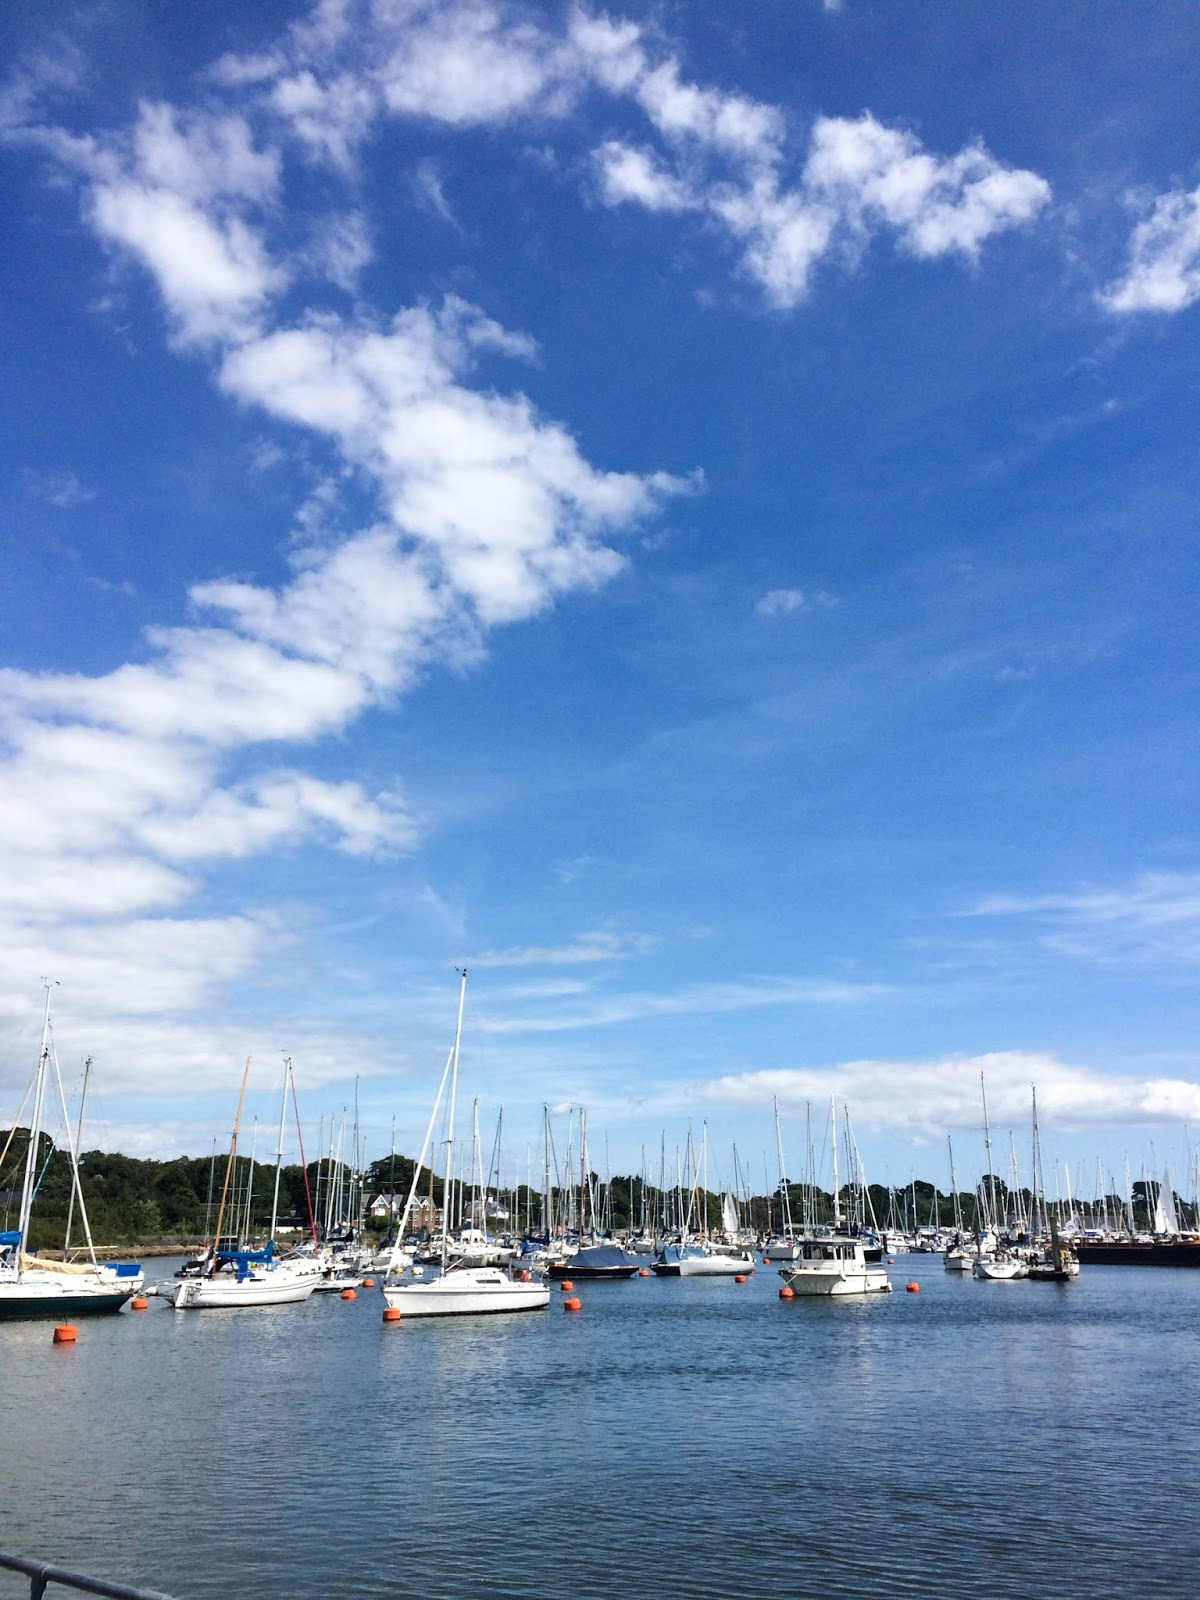 Things to do in Lymington Hampshire, Hampshire blog, things to do in Hampshire, Lymington seafood festival